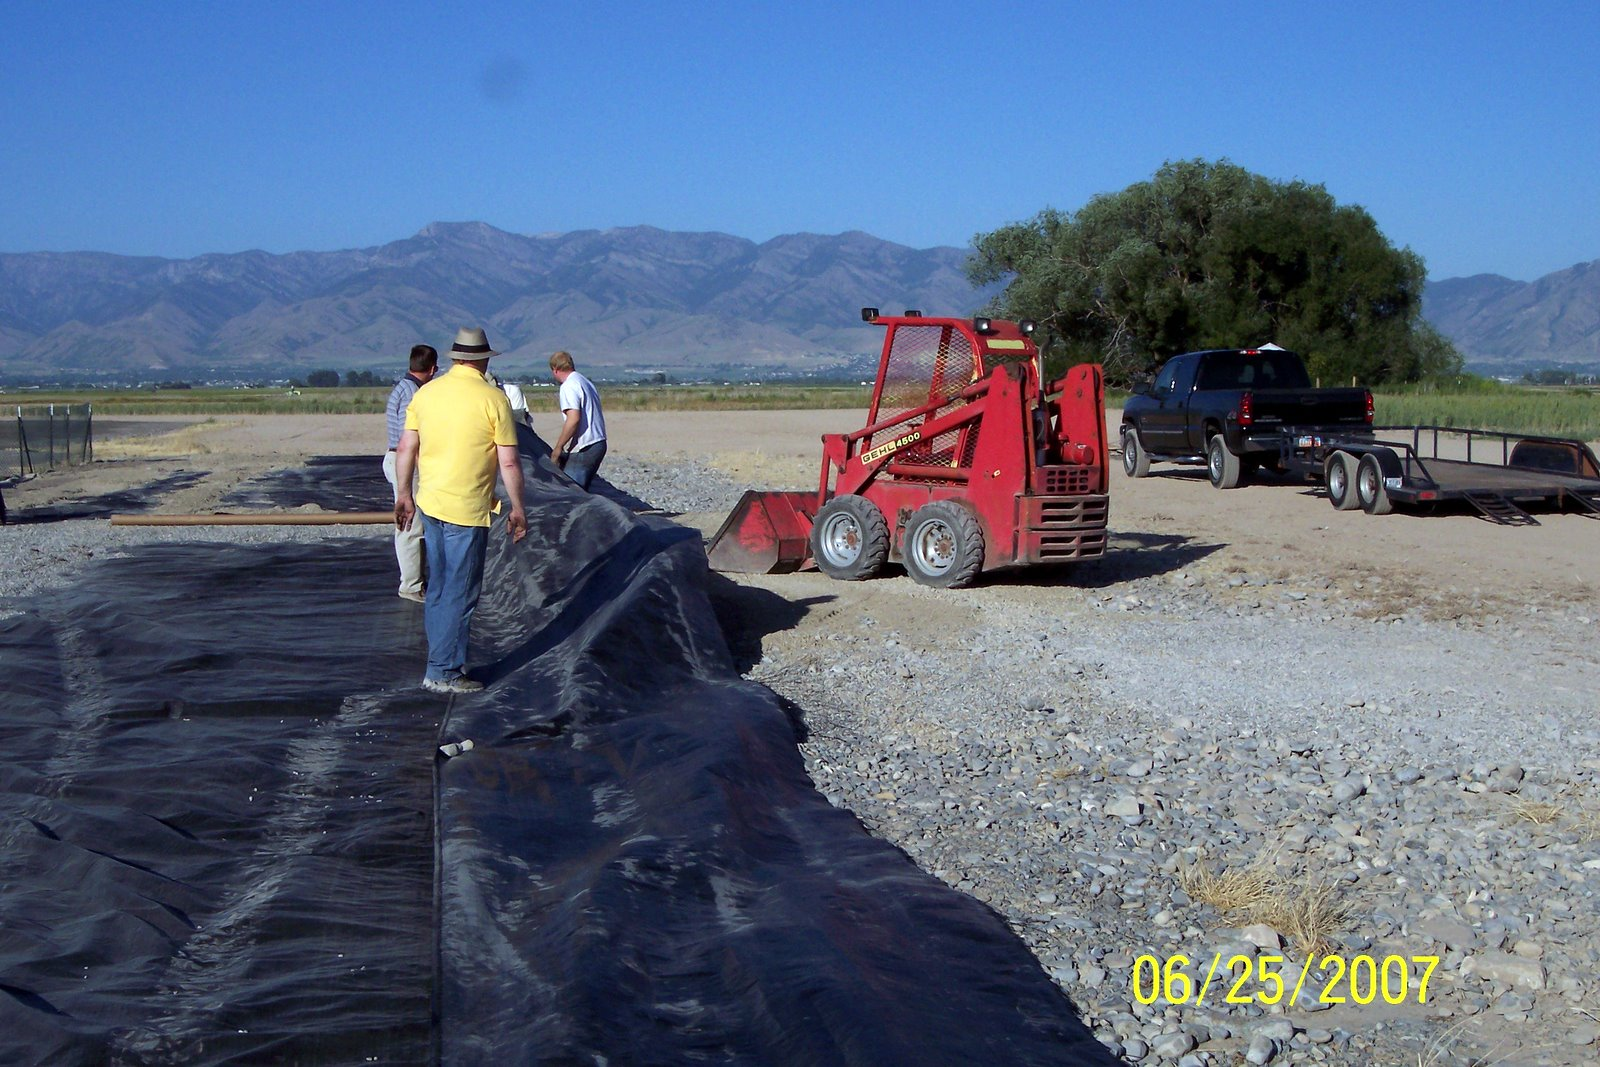 THE WINDY CONDITIONS MADE FOR SPECIAL CHALLENGES DURING THE PROJECT.